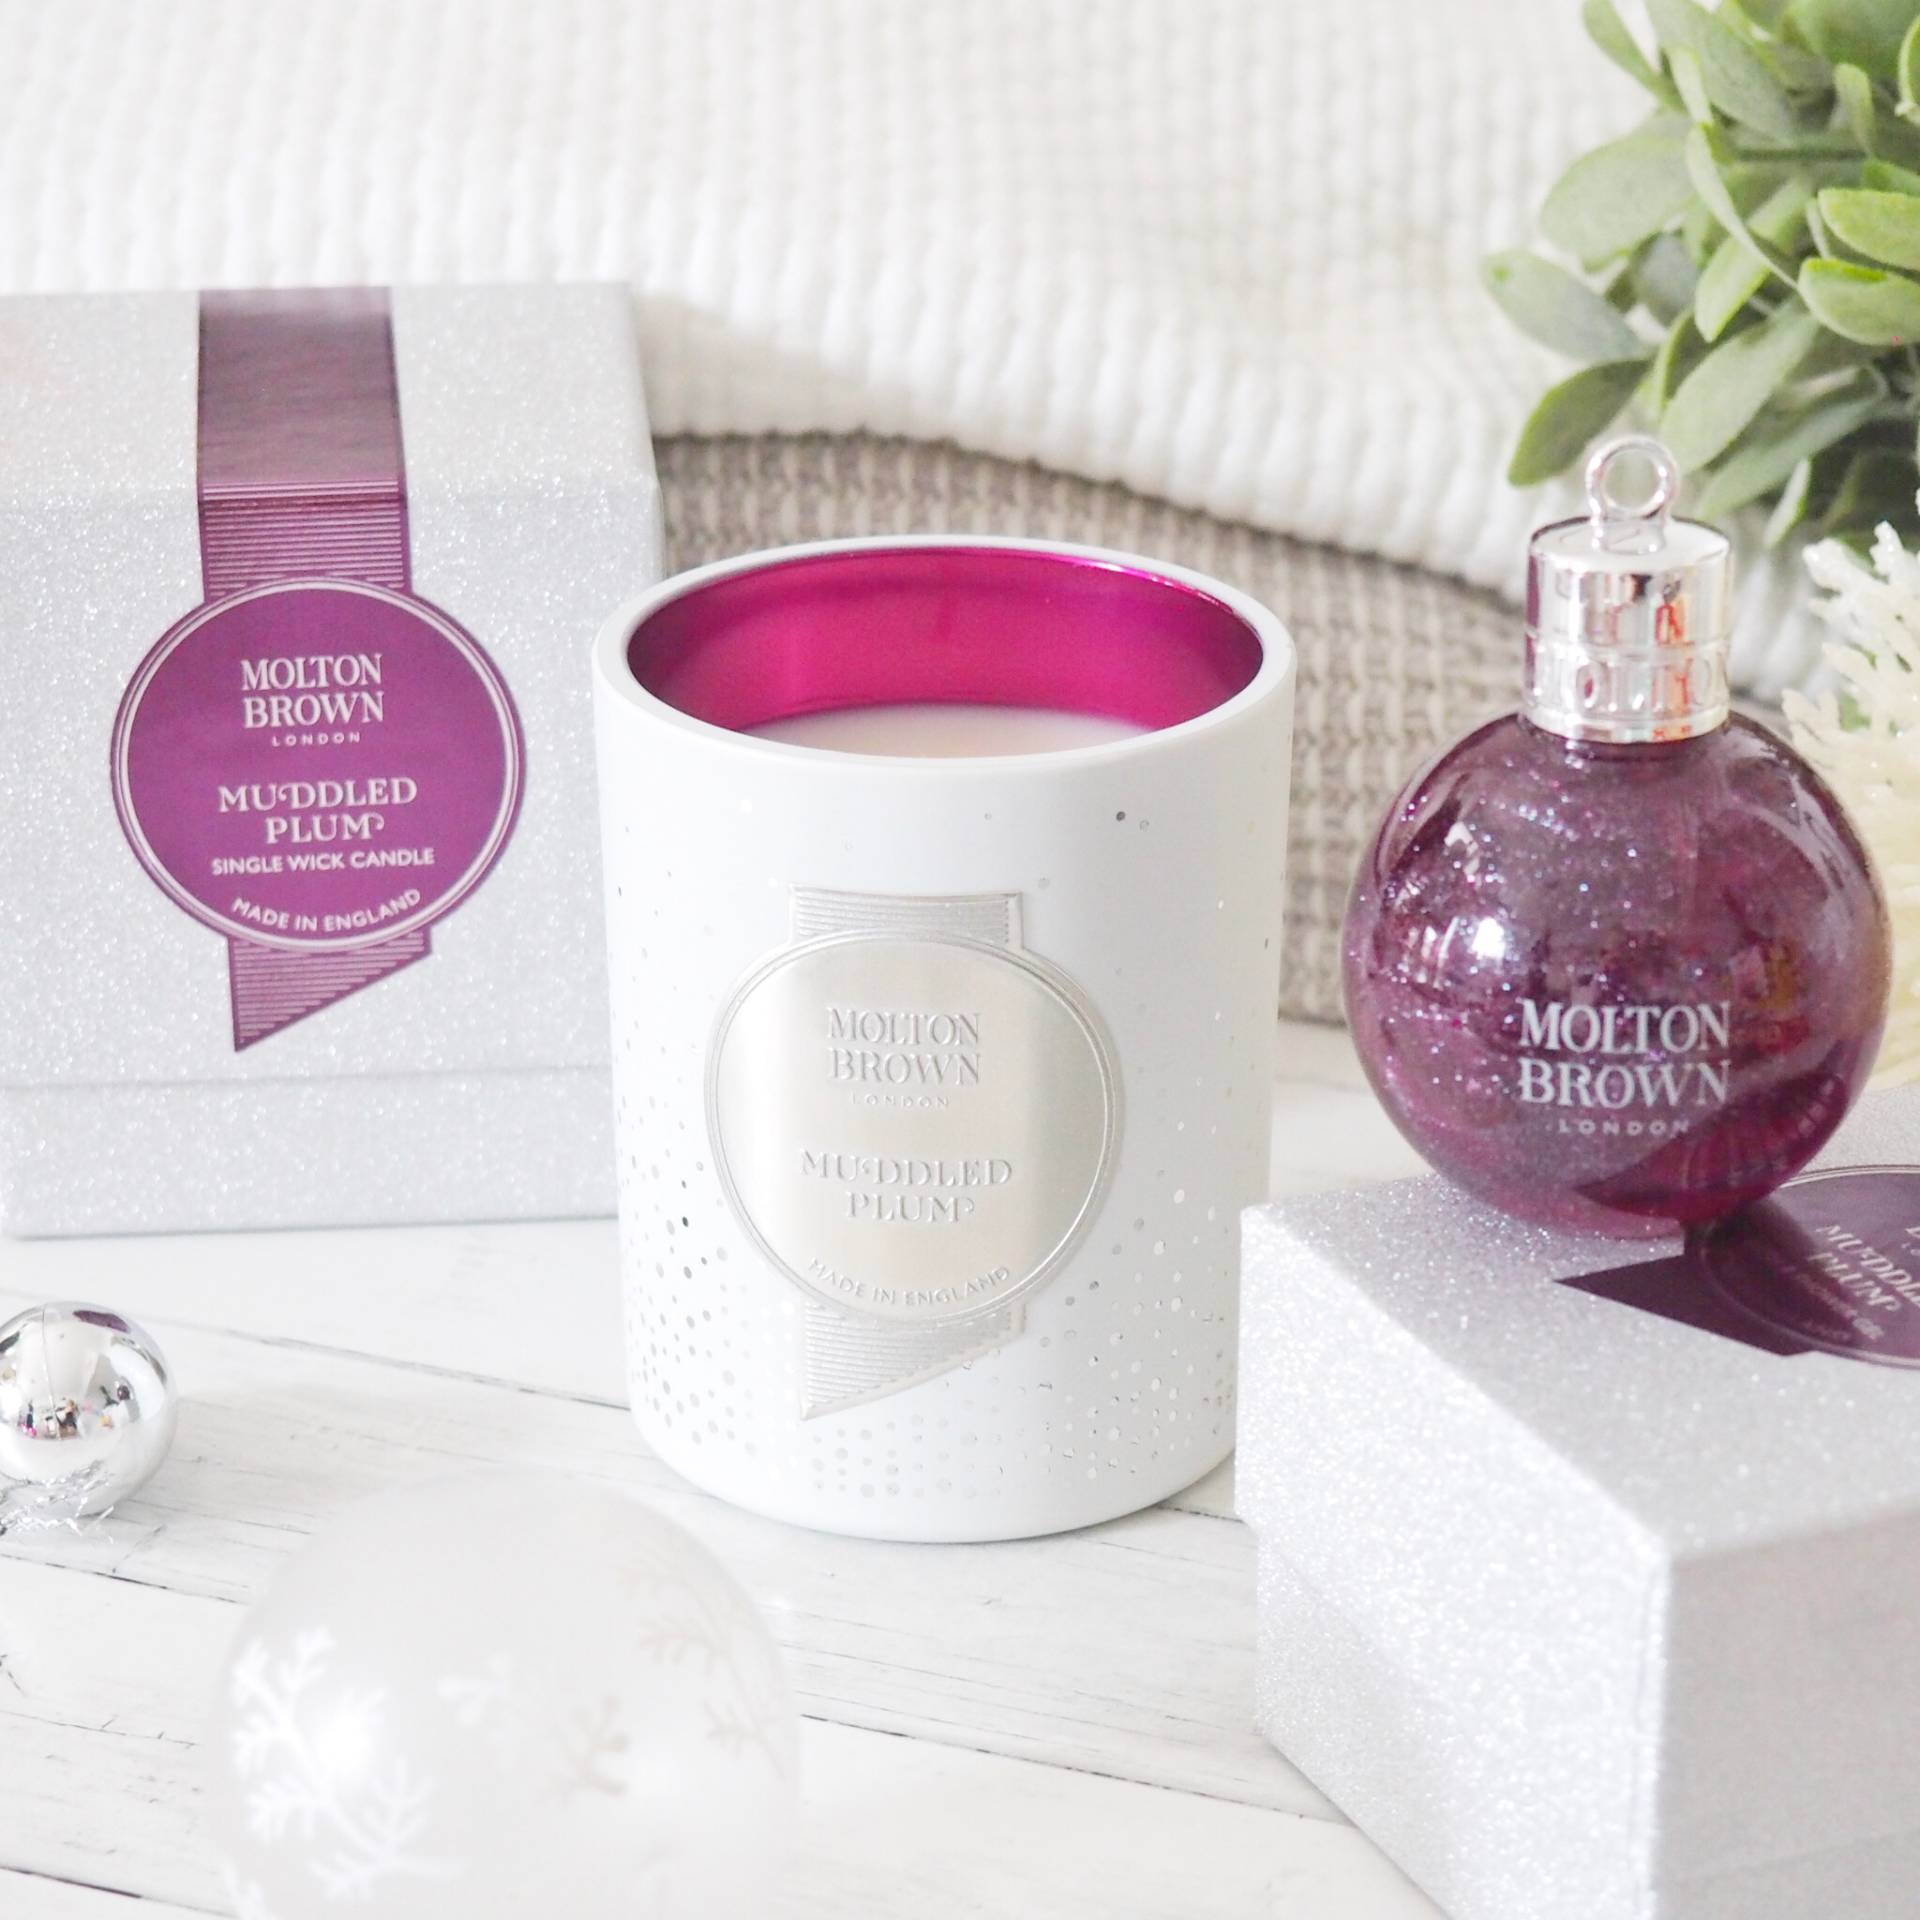 Molton_Brown_Muddled_Plum